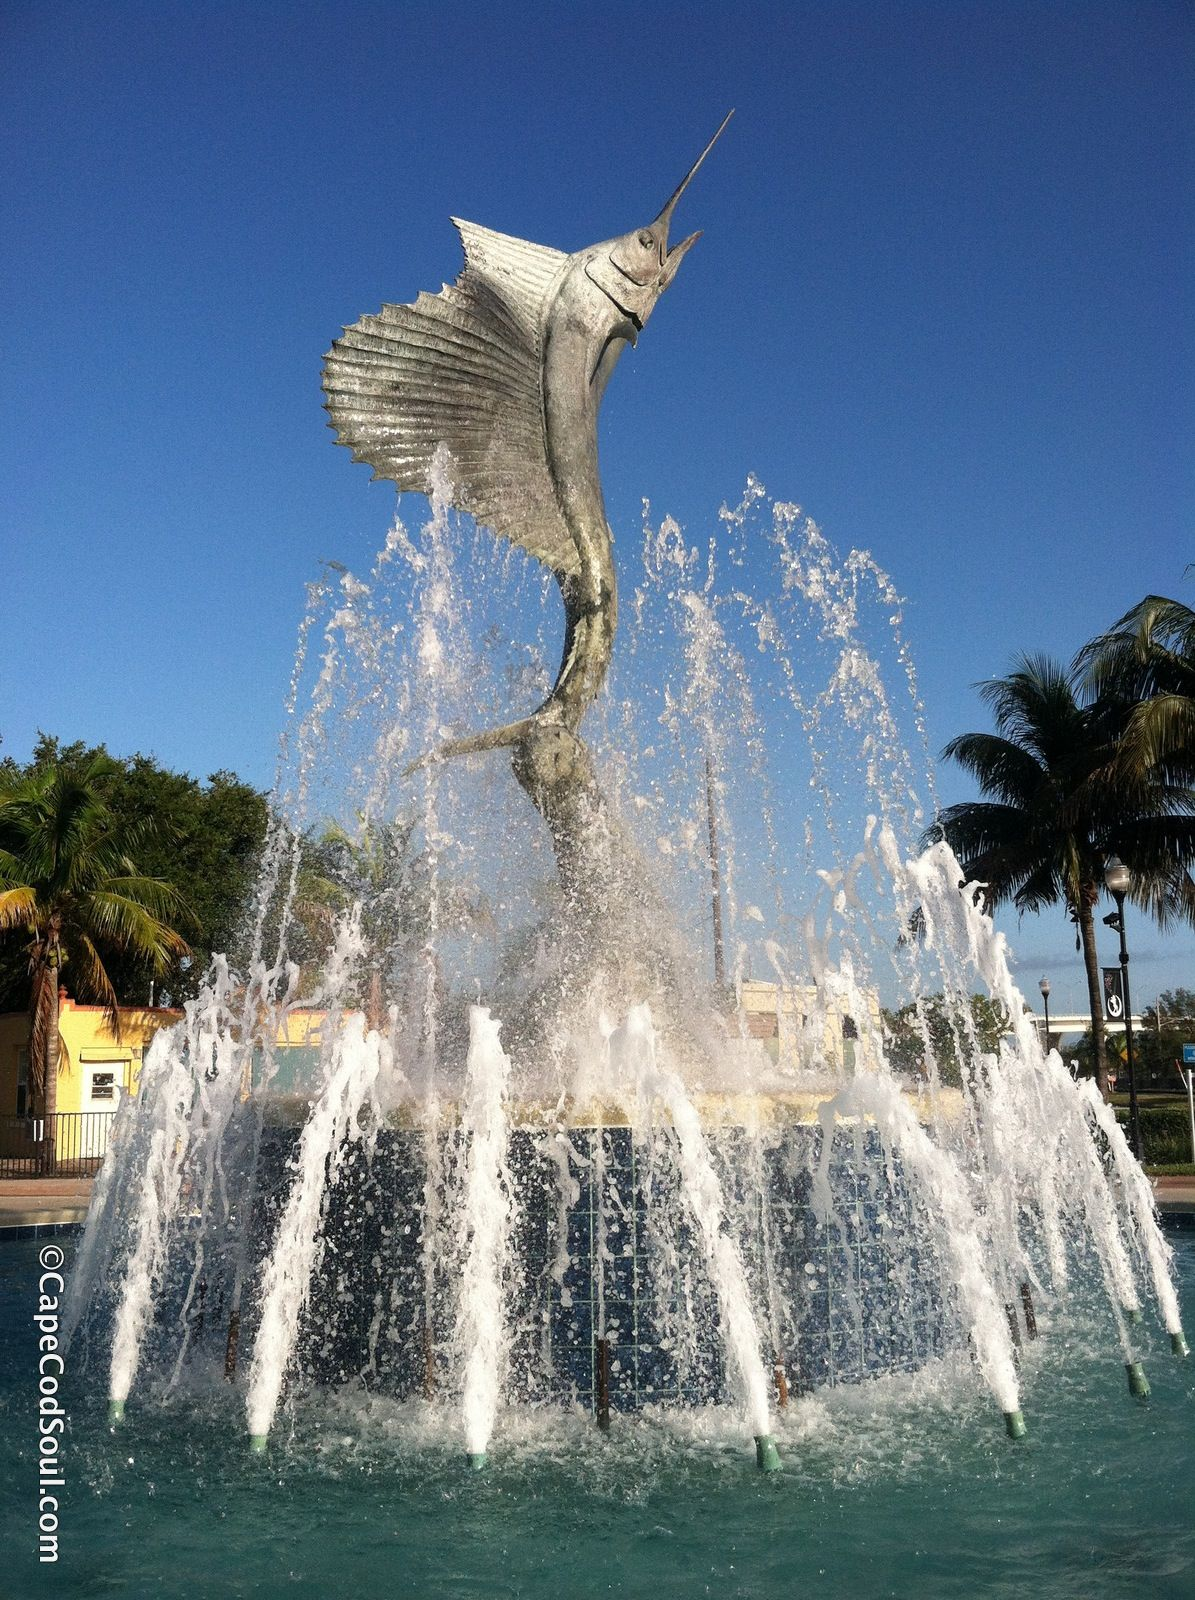 Sailfish Fountain Http Astore Amazon Com Capeccom00 20 Love Photos Fountain Stuart Florida